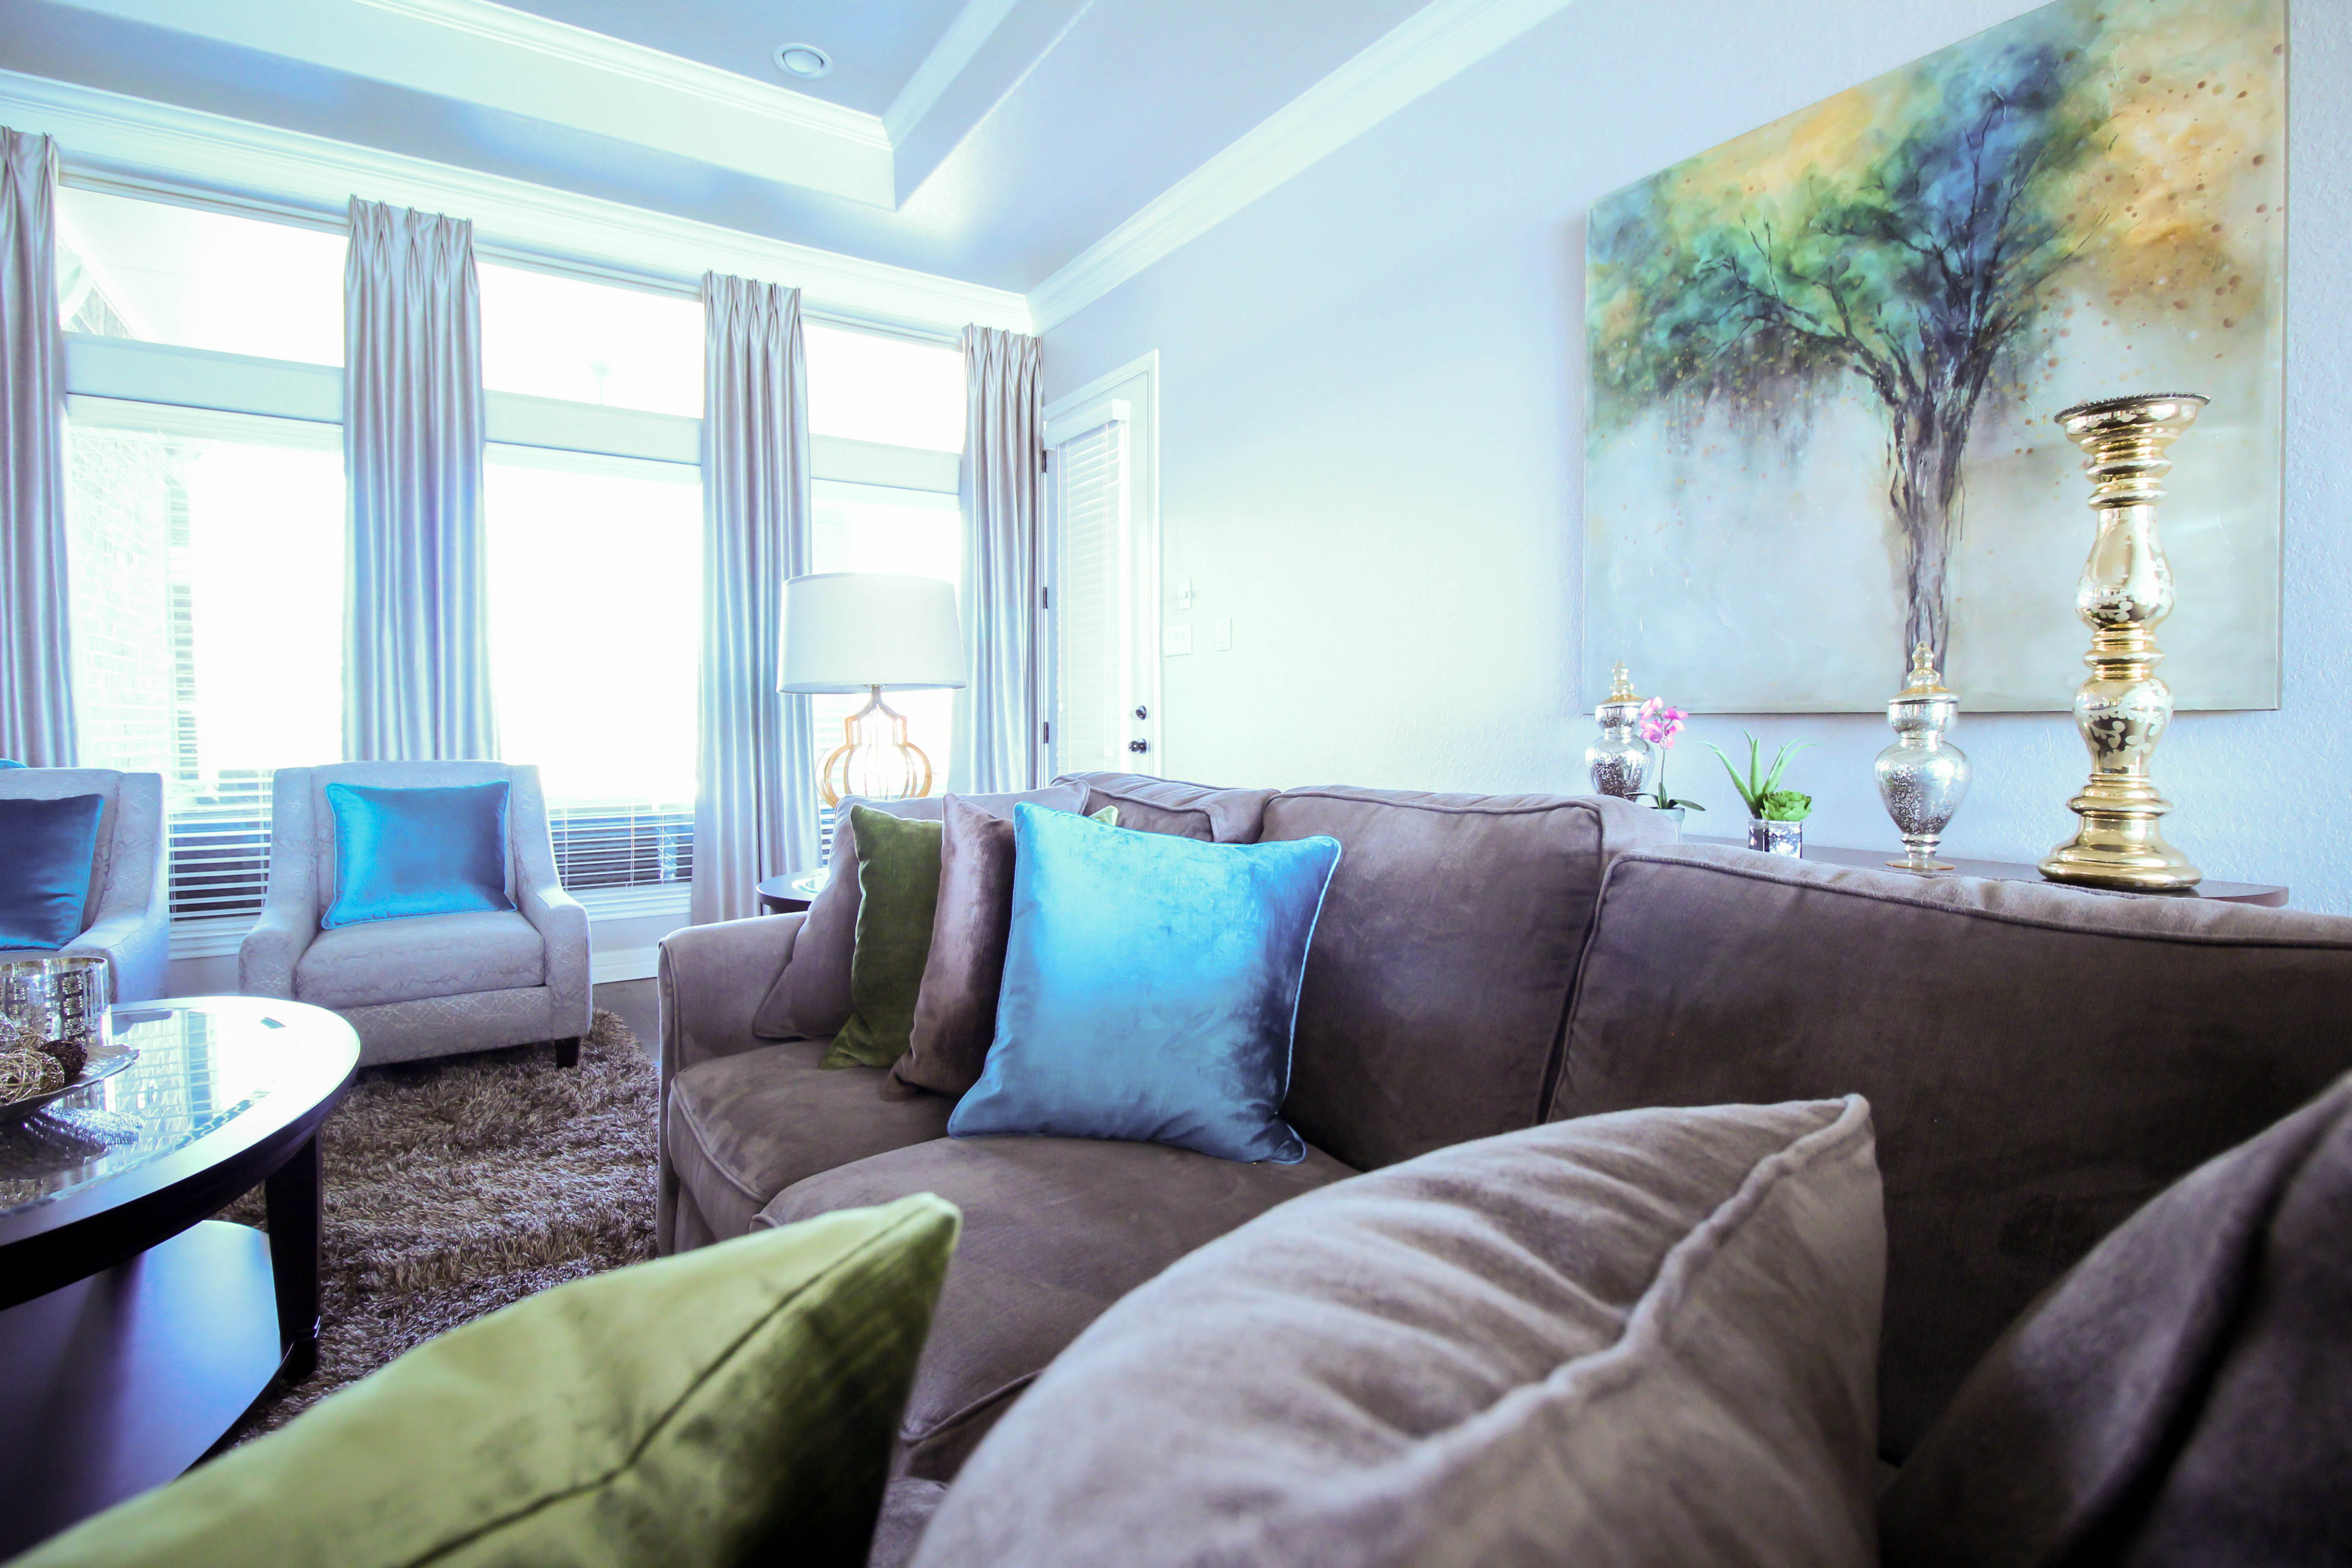 Interior Designer Services That Help You Love Where You Live